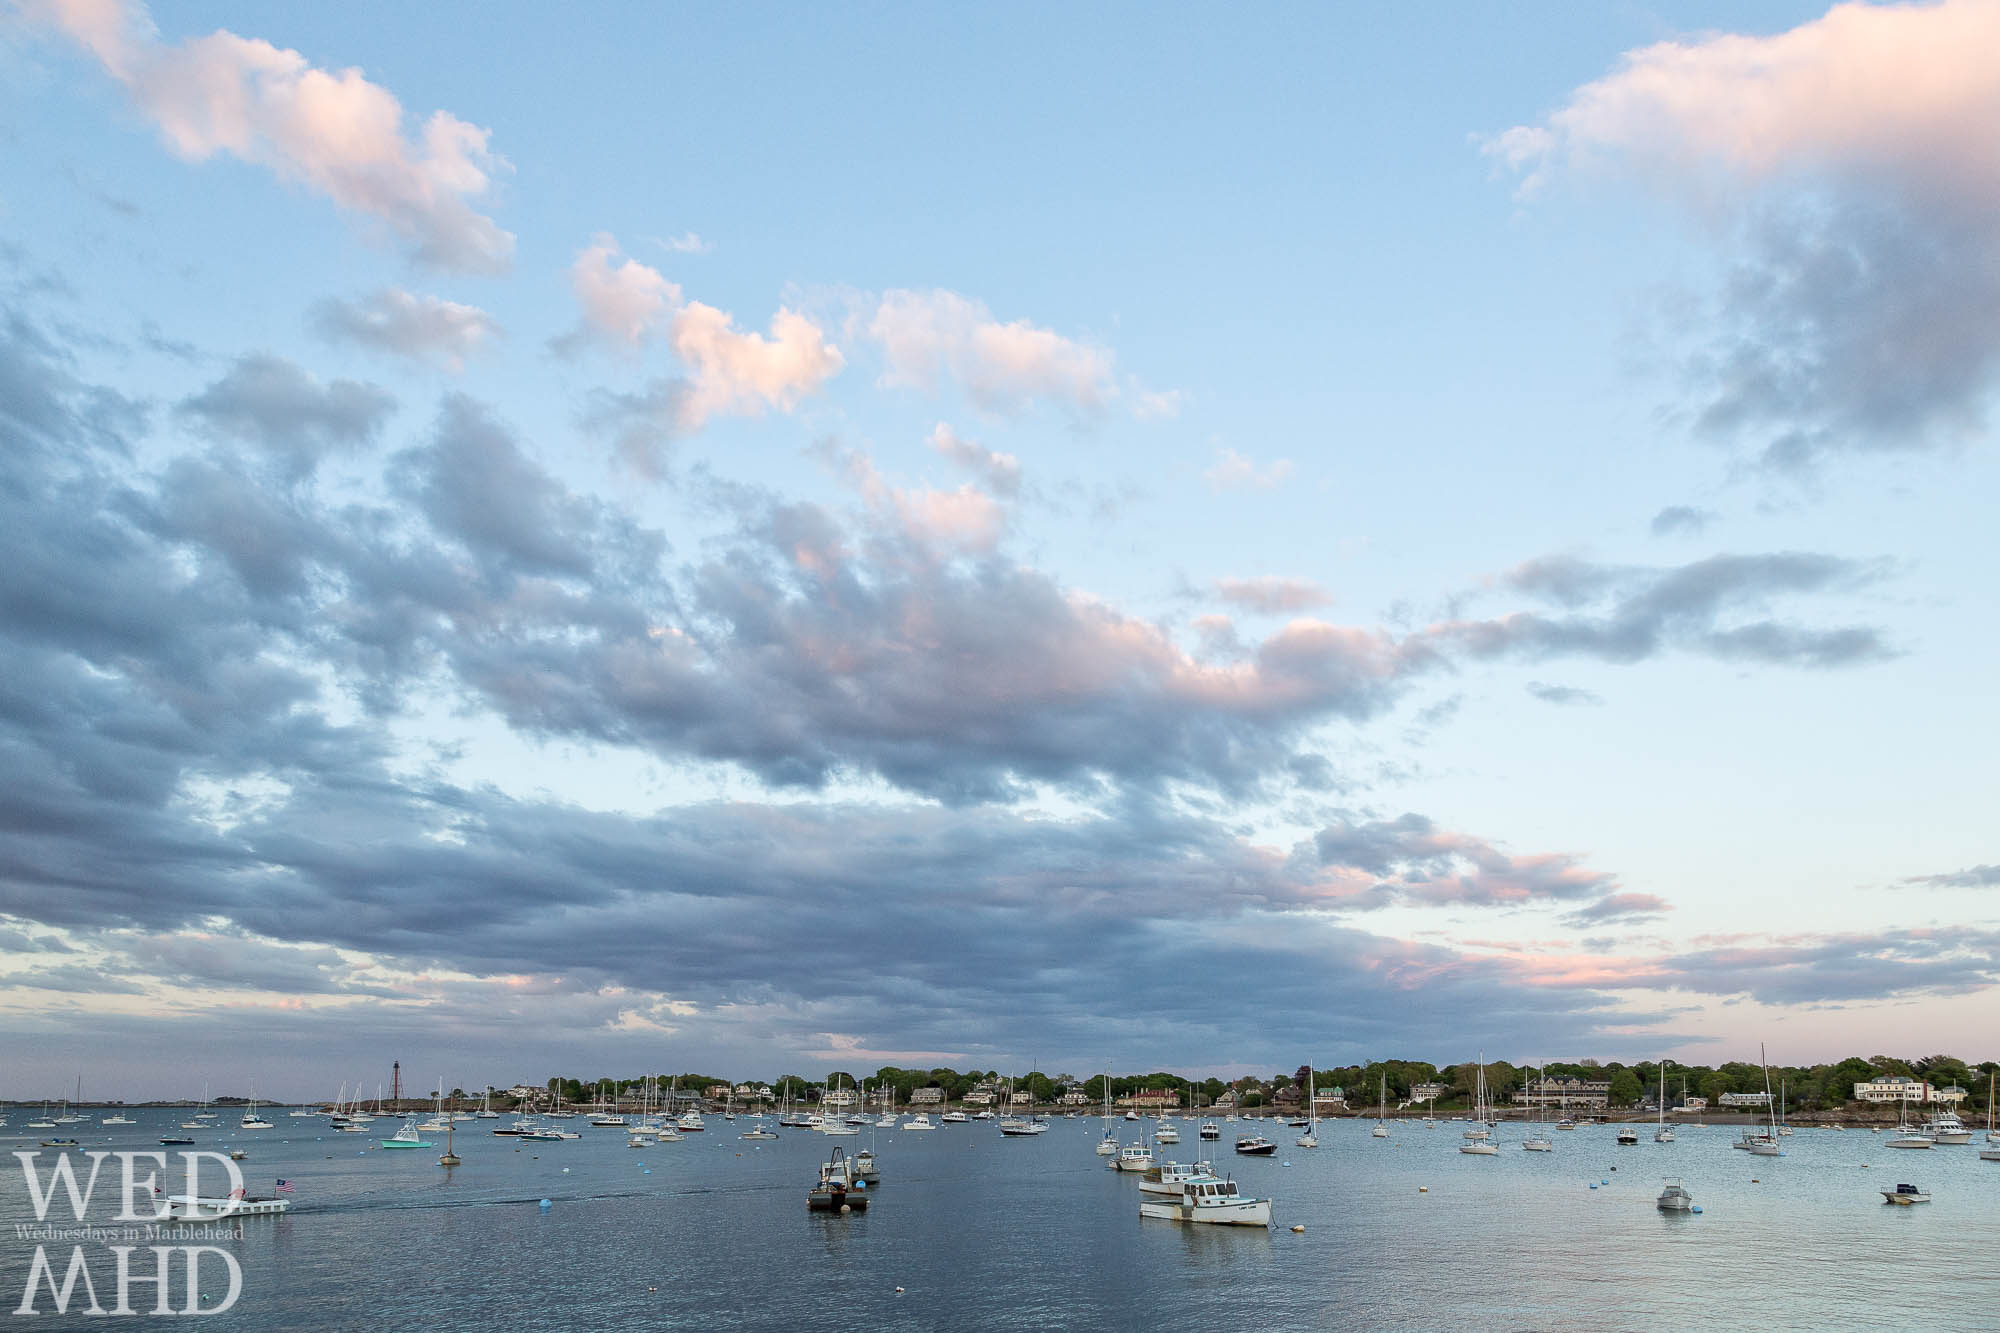 The harbor fills up quickly on these May days in Marblehead